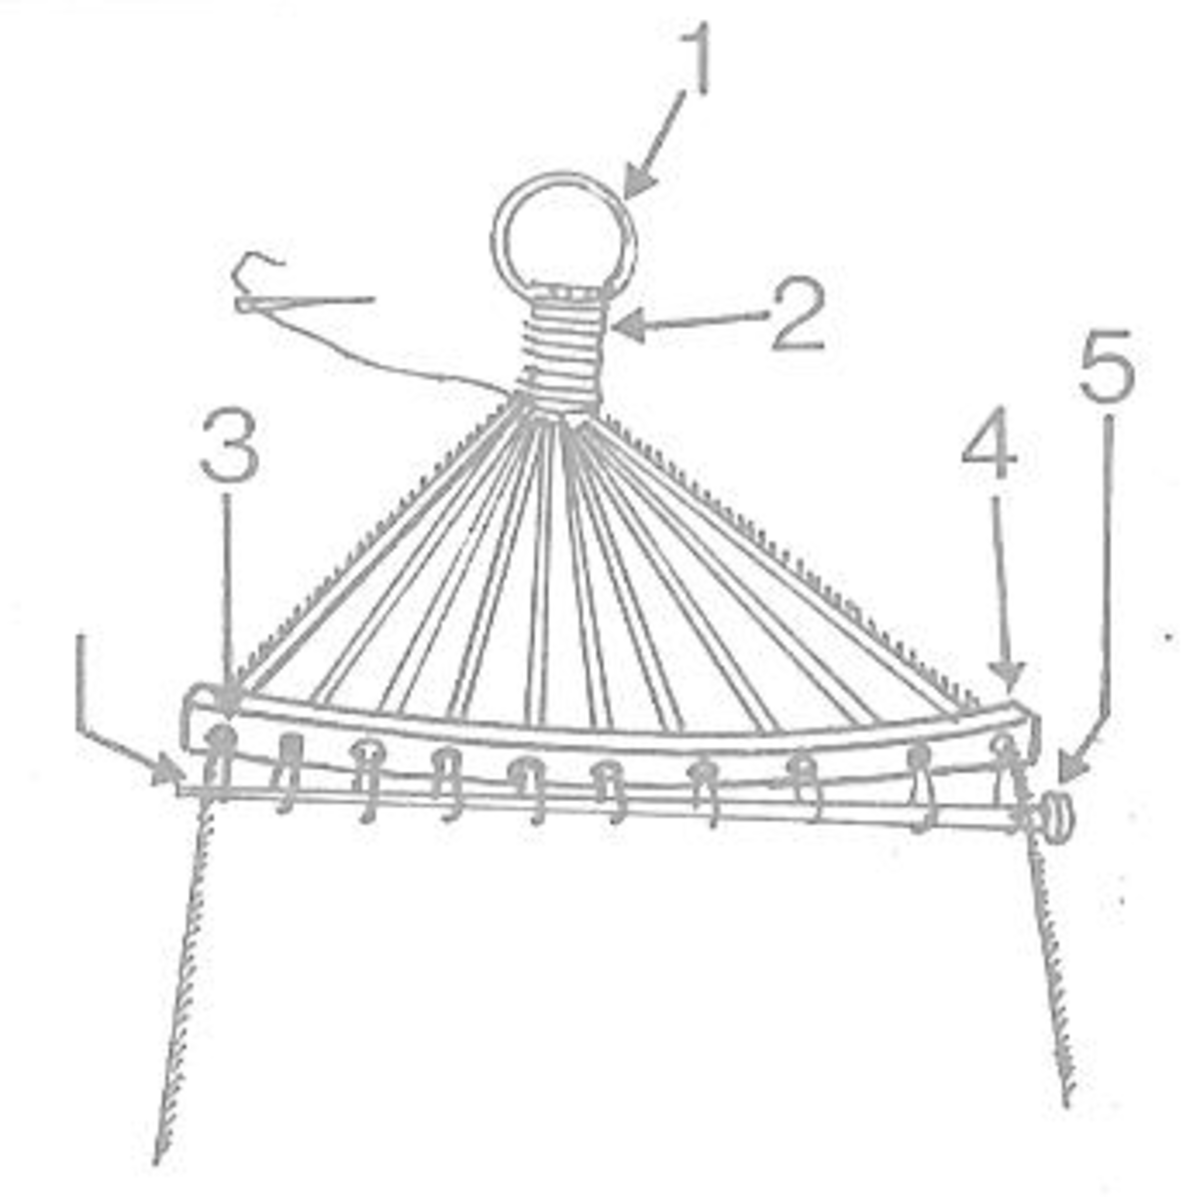 Figure 1 - #1 Shows Ring; #2 Coil; #3 First Hole in Wood; #4 Wooden Bar: #5 Kitting Needle